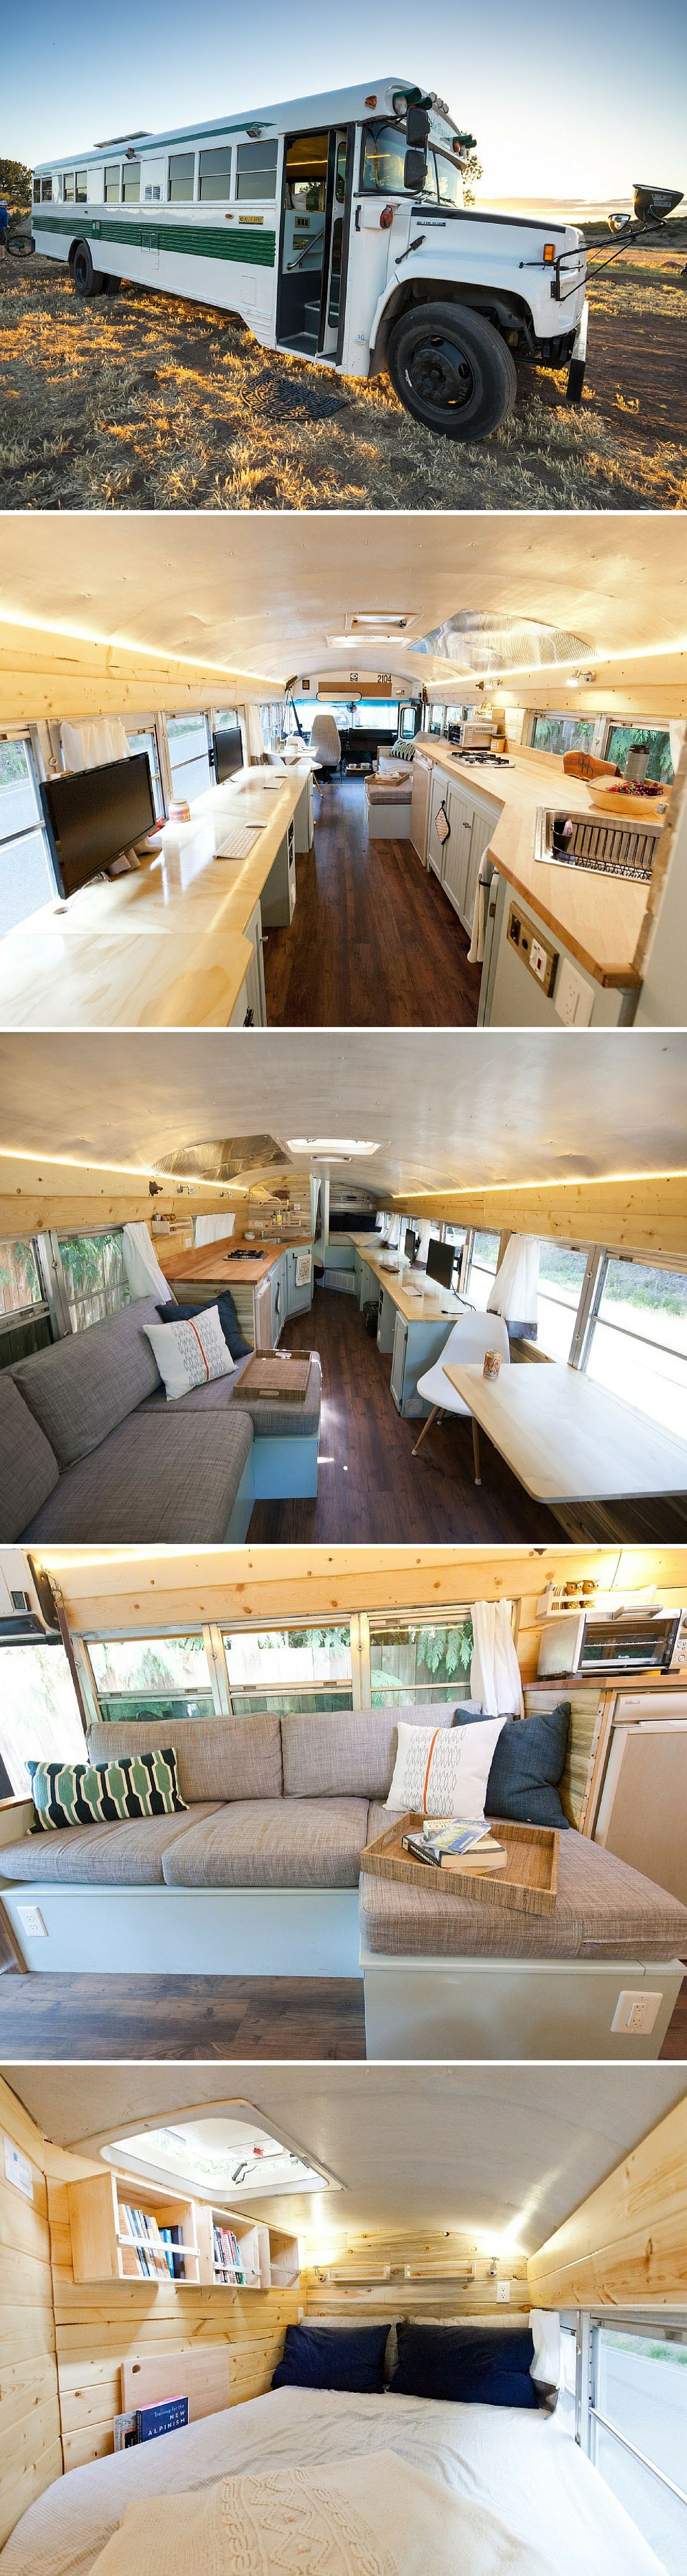 A former school bus transformed into a beautiful home and office on ...